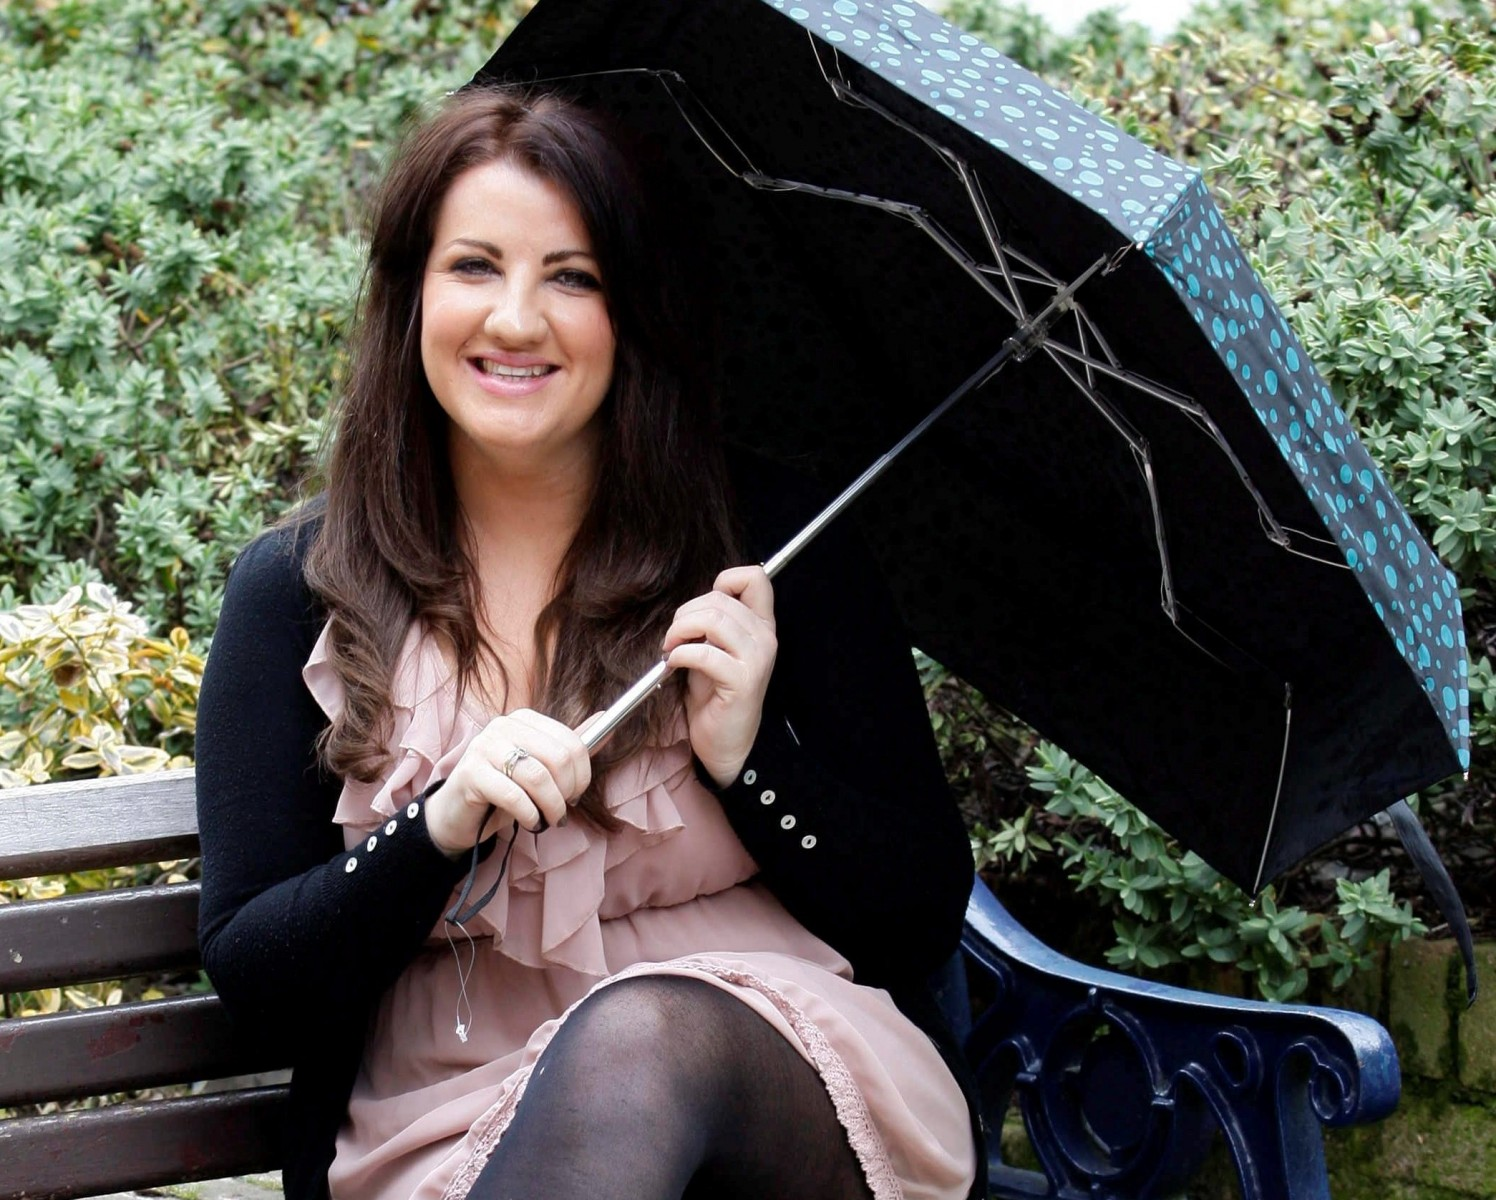 Shock Pic! Tipsy night out ends with woman's face impaled on a BROLLY